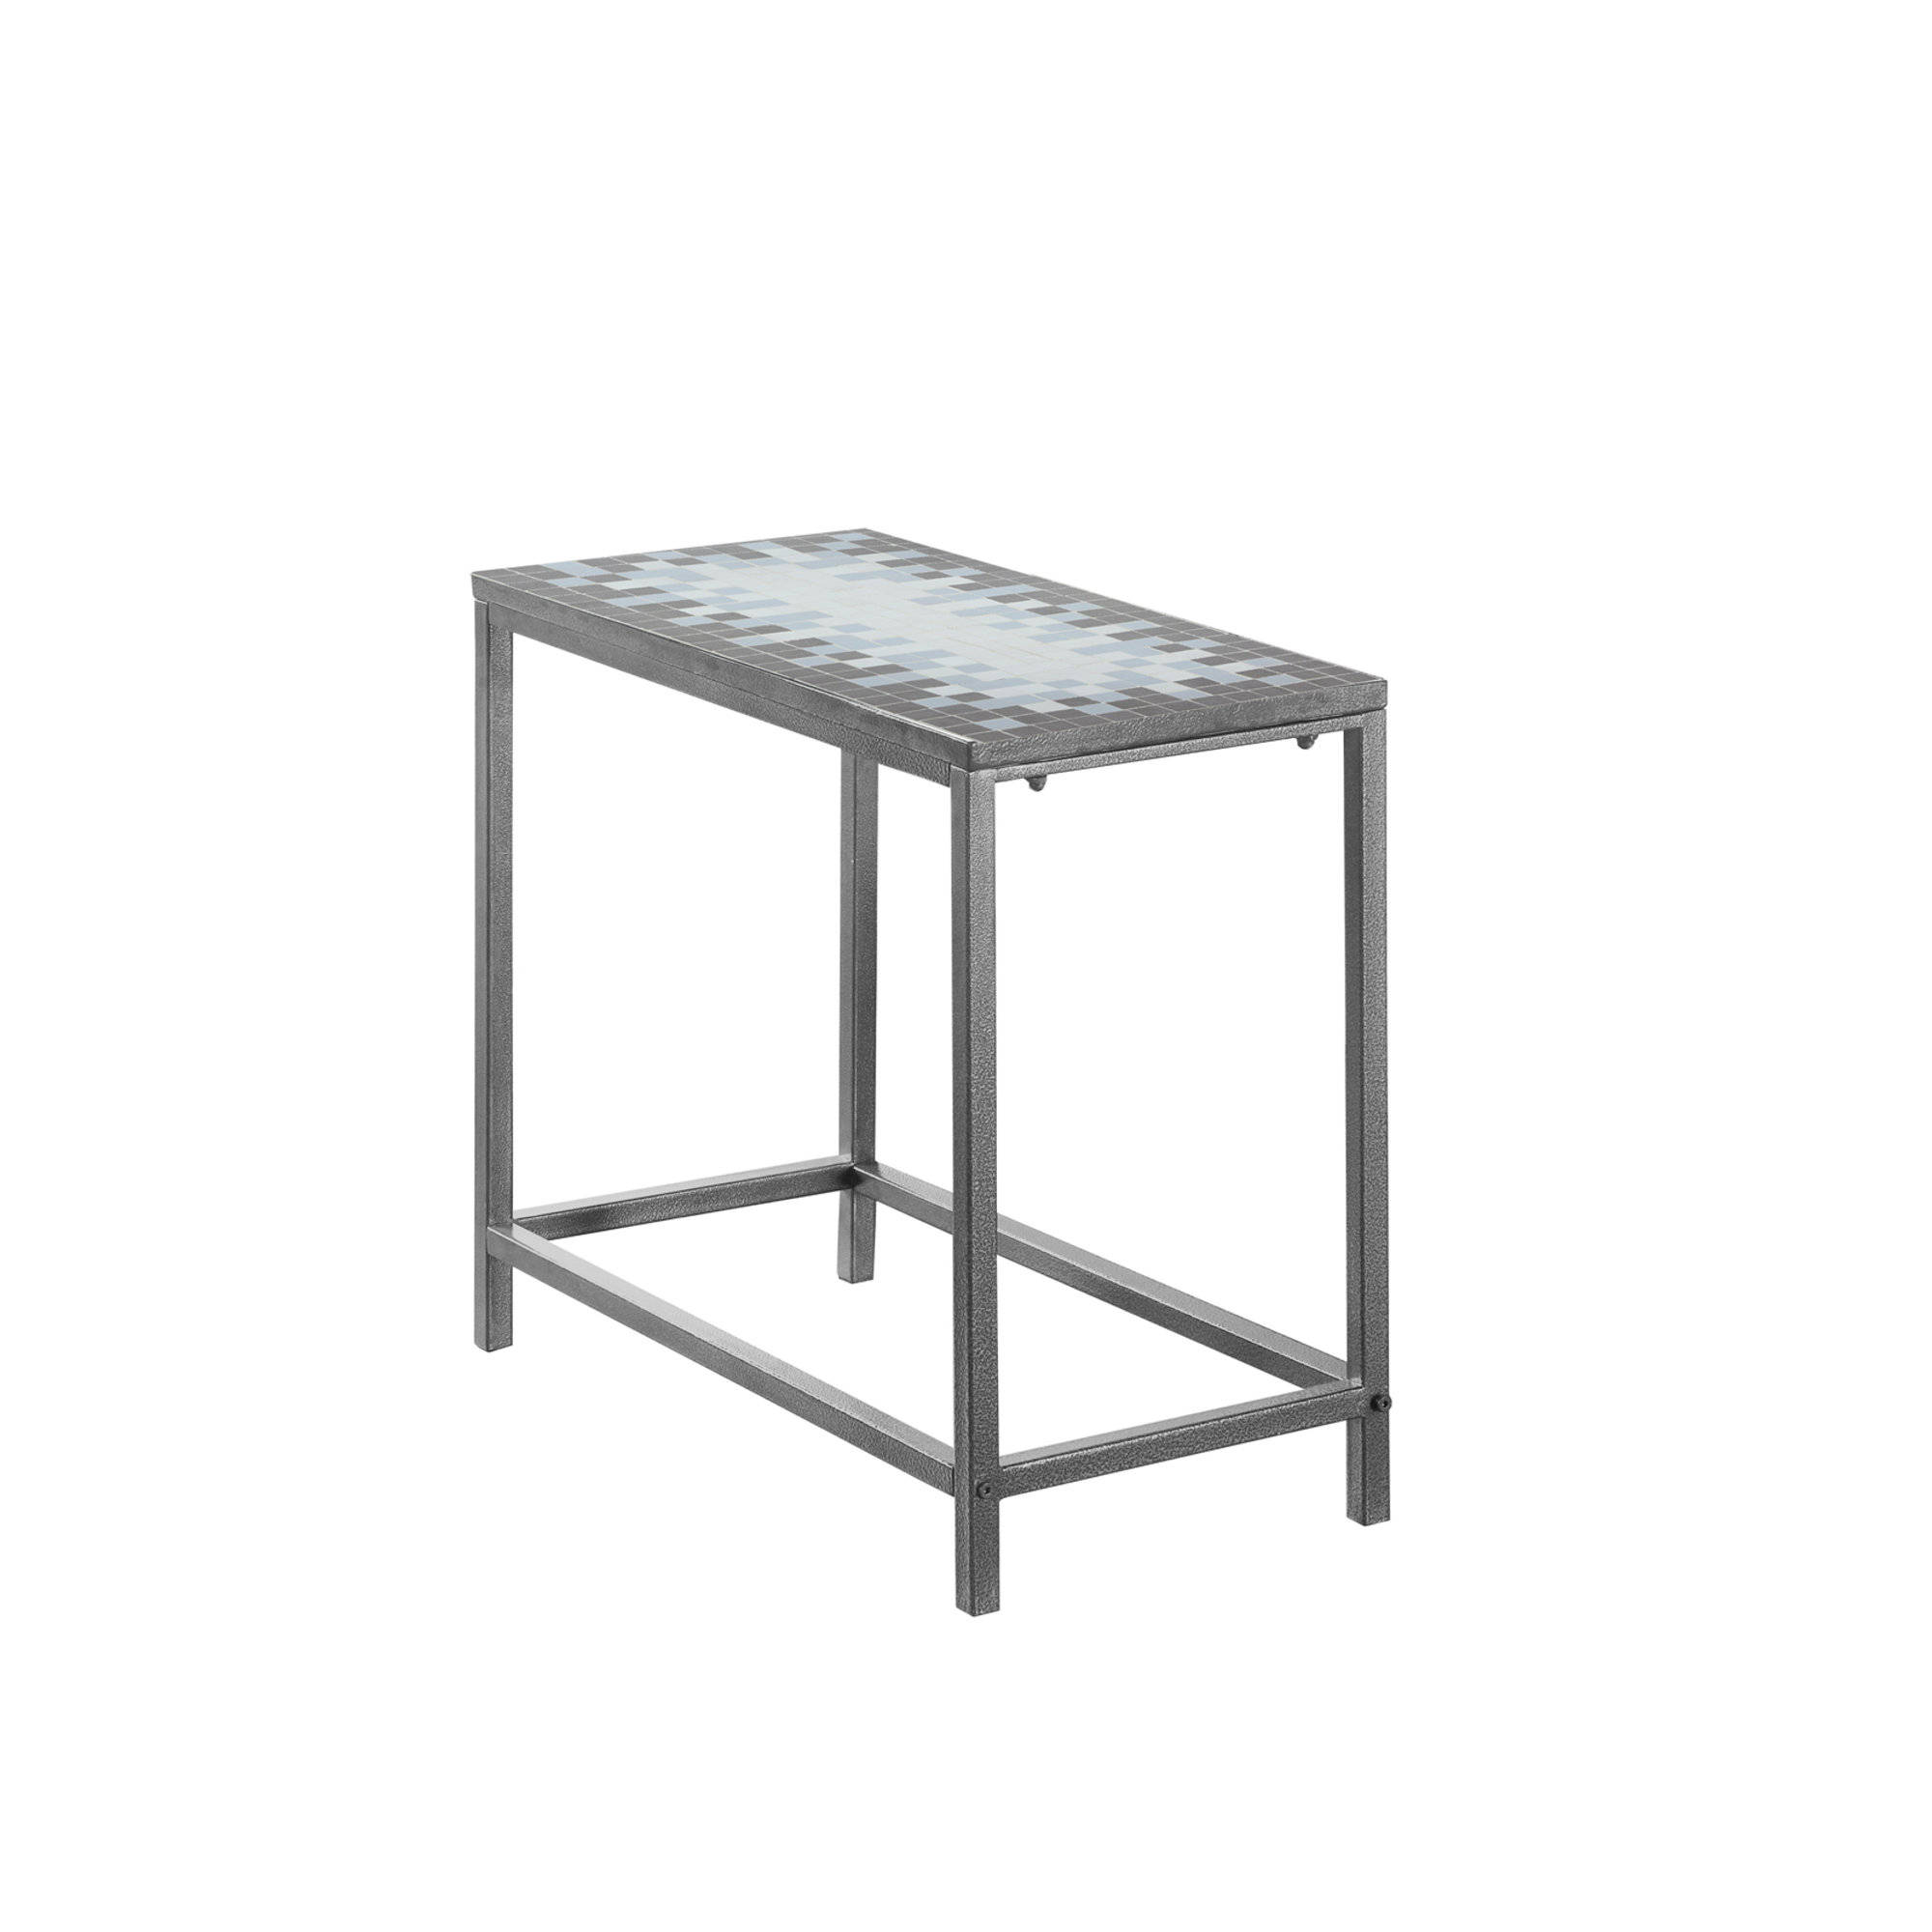 monarch specialties grey blue metal tile accent end table the mnc click enlarge perspex bedside french farmhouse modern brass lamp homepop coffee and side furniture home decor